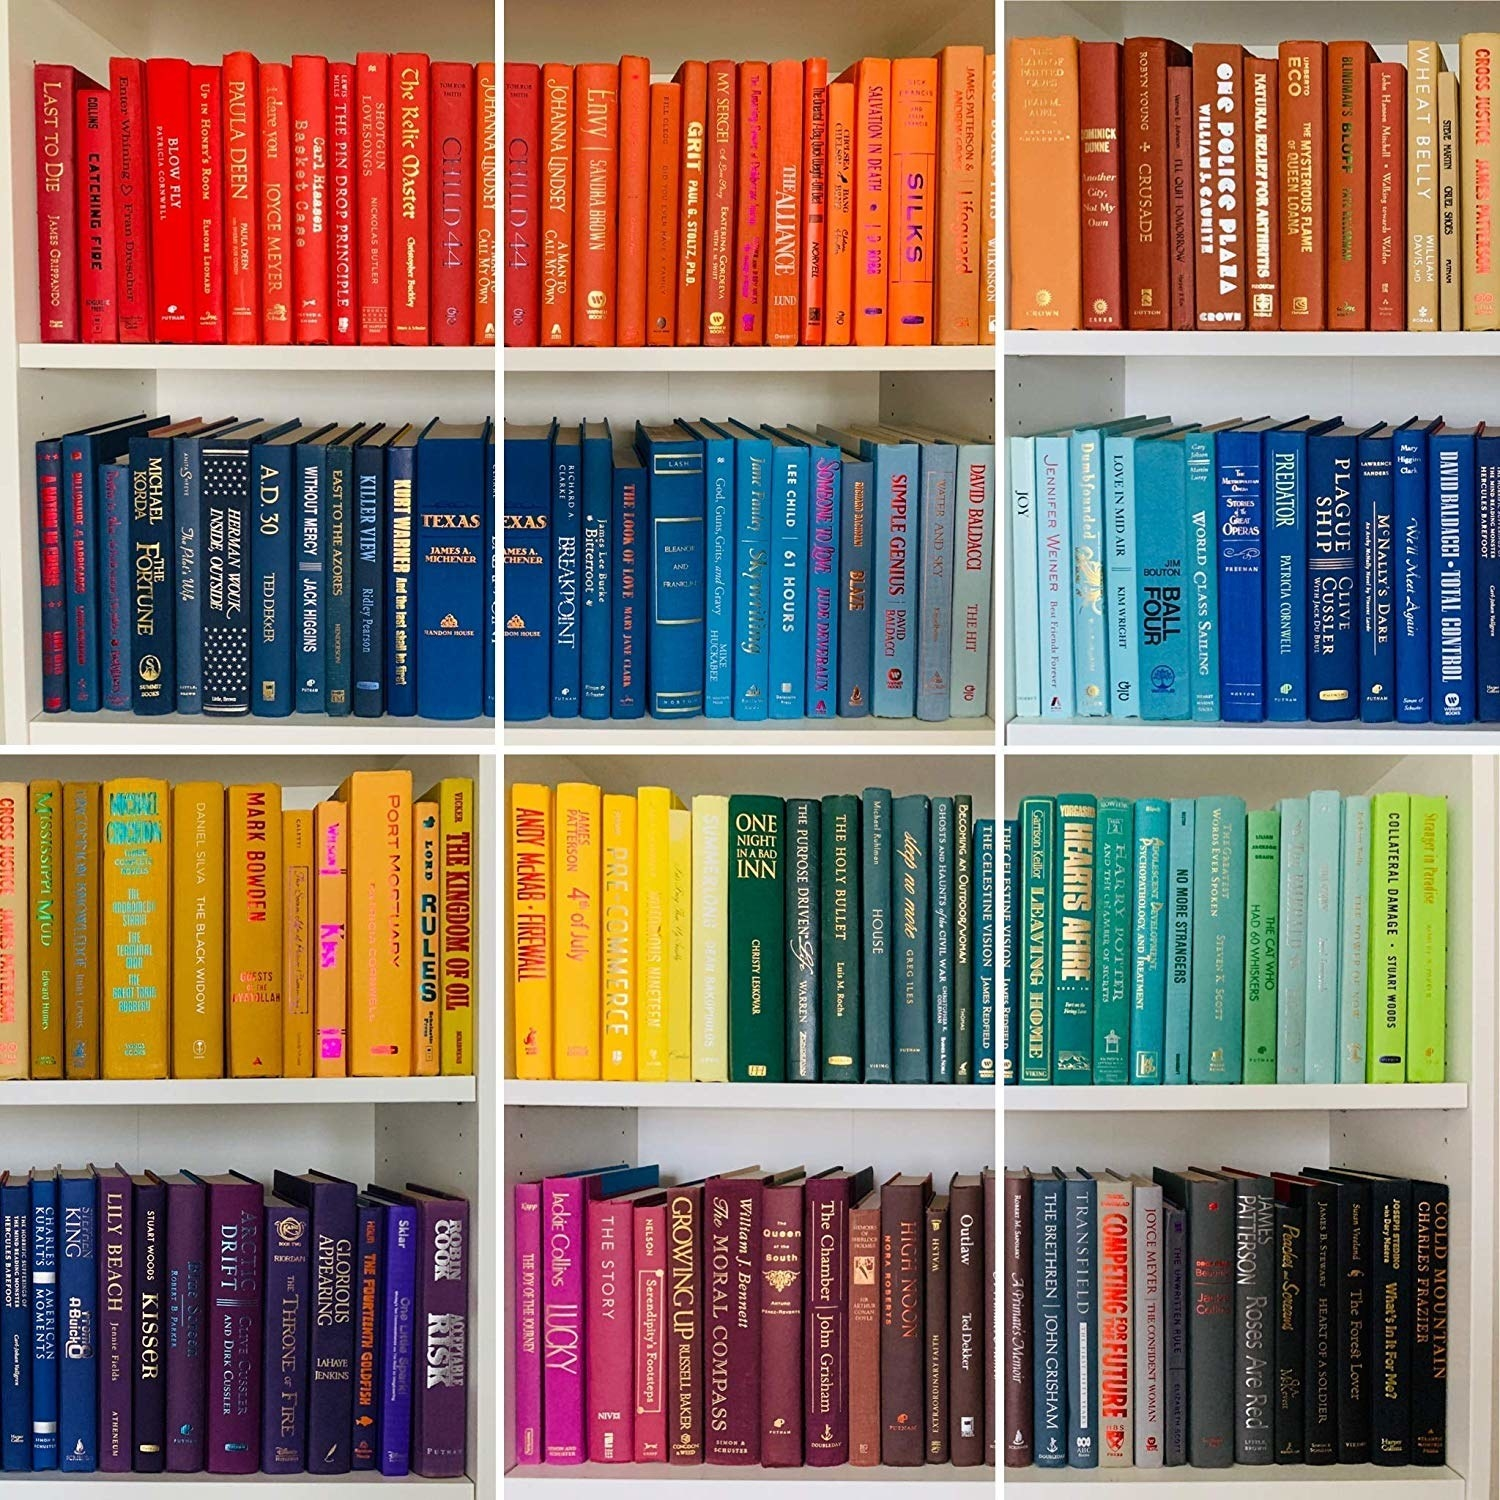 A bookshelf filled with color-coordinated books.